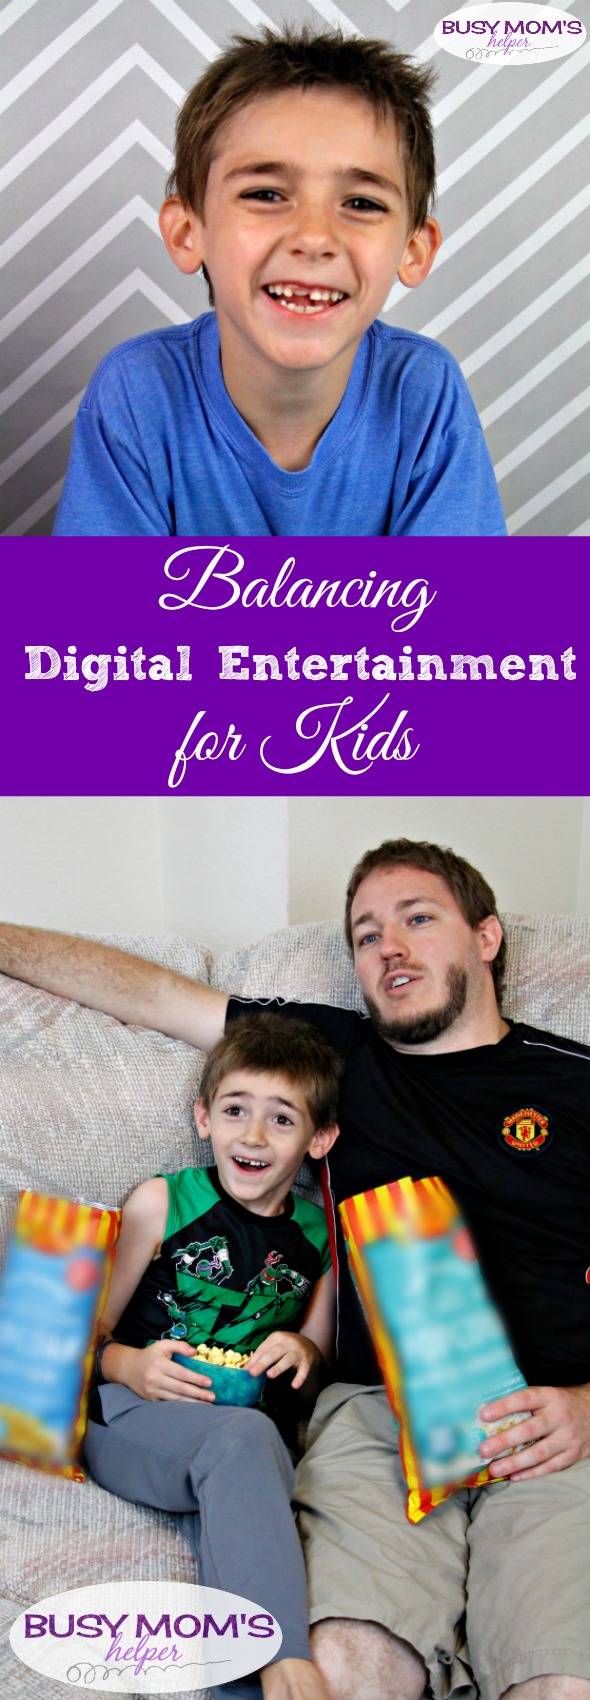 Balancing Digital Entertainment for Kids #AD #WhatIsYourChildWatching #ExploreDiscoverAndGrow #parenting #screentime